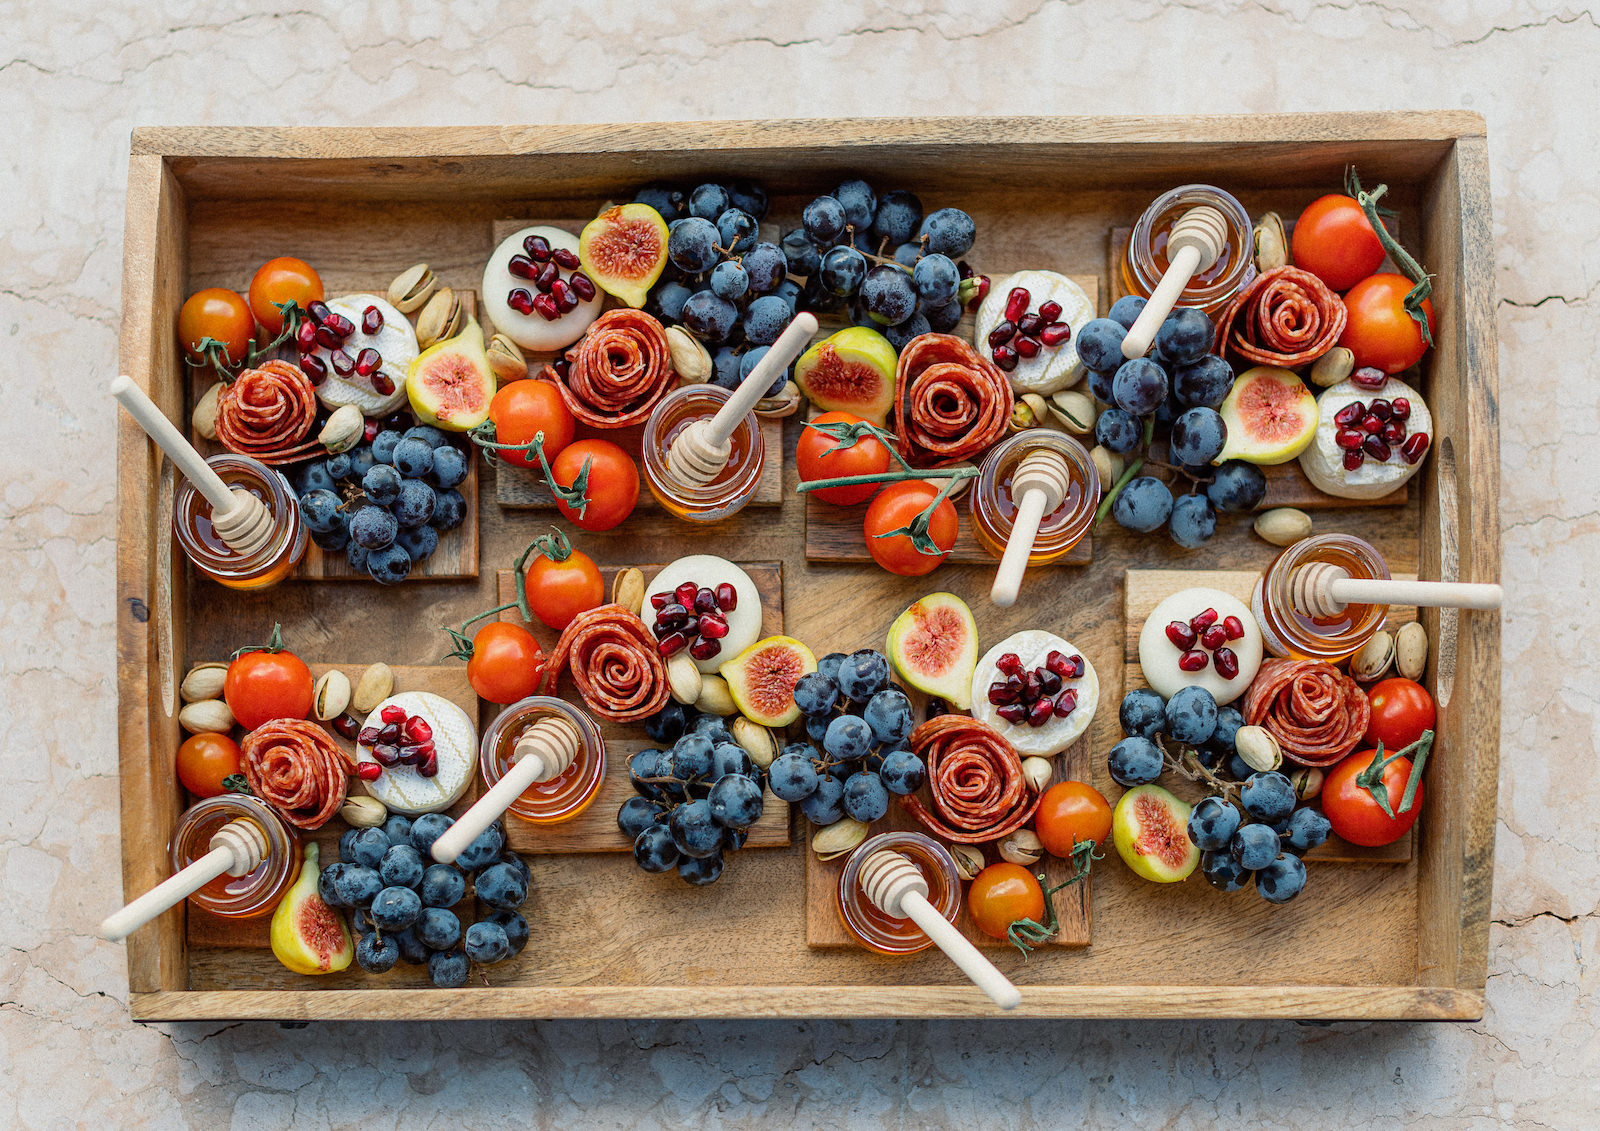 Intimate COVID Elopement Micro Wedding Cocktail Hour Hors D'oeuvre Idea   Mini Grazing Board Display   Personal Cheese and Charcuterie Trays with Mini Brie and Mini Honey Jars with Salami Roses Figs Cherry Tomato Pistachios and Grapes